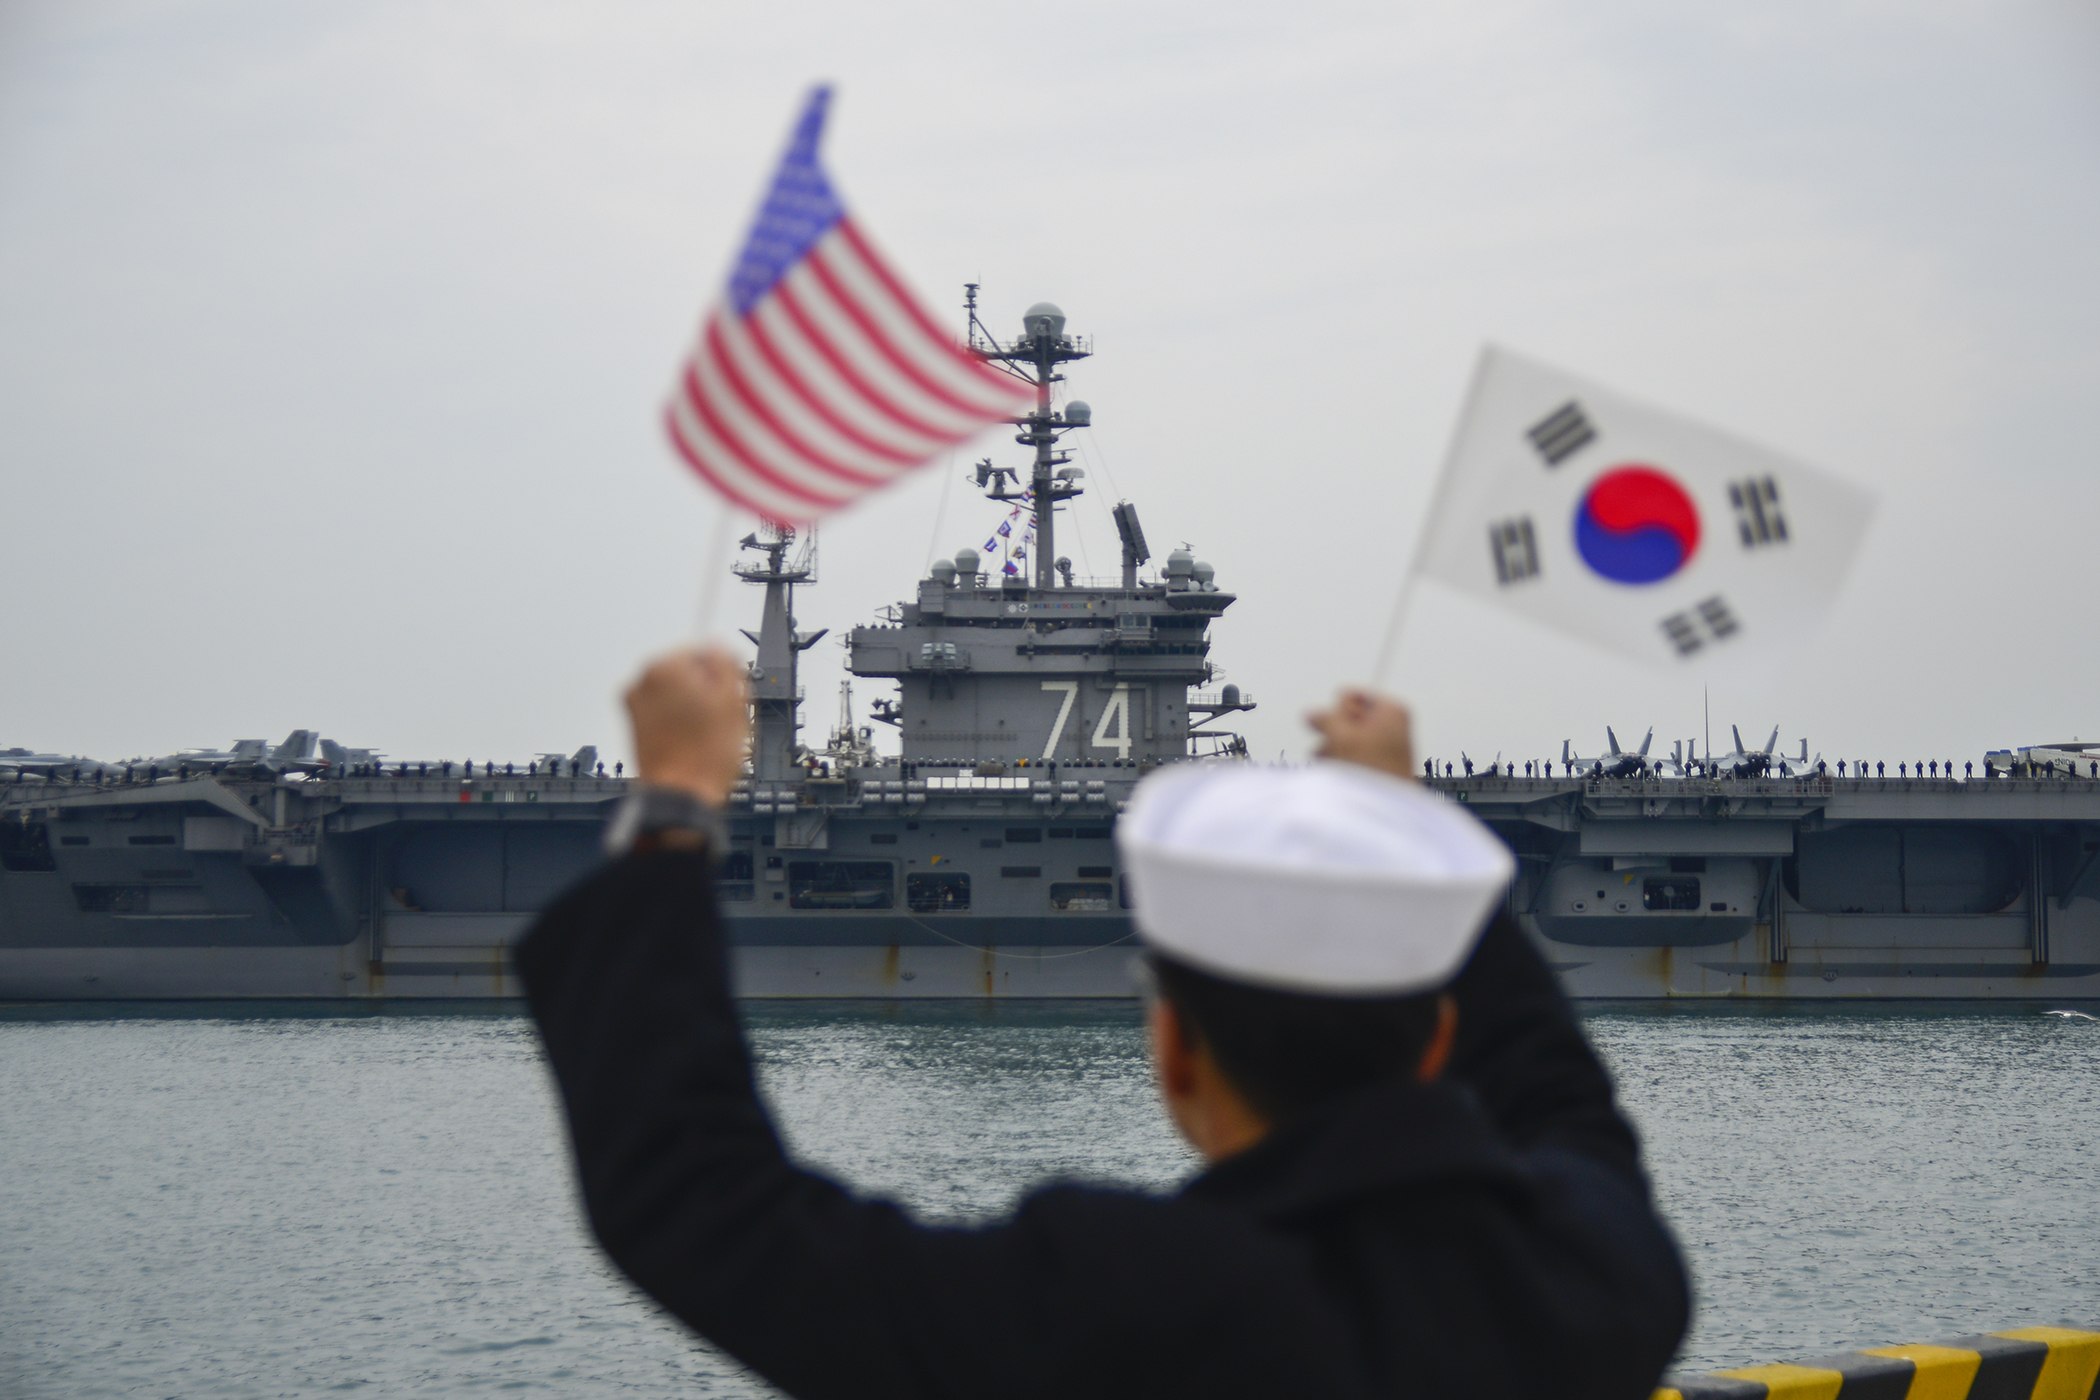 USS John C. Stennis (CVN-74) arrives at Commander, Republic of Korea Fleet base in Busan, the new home on March 12, 2016. US Navy Photo